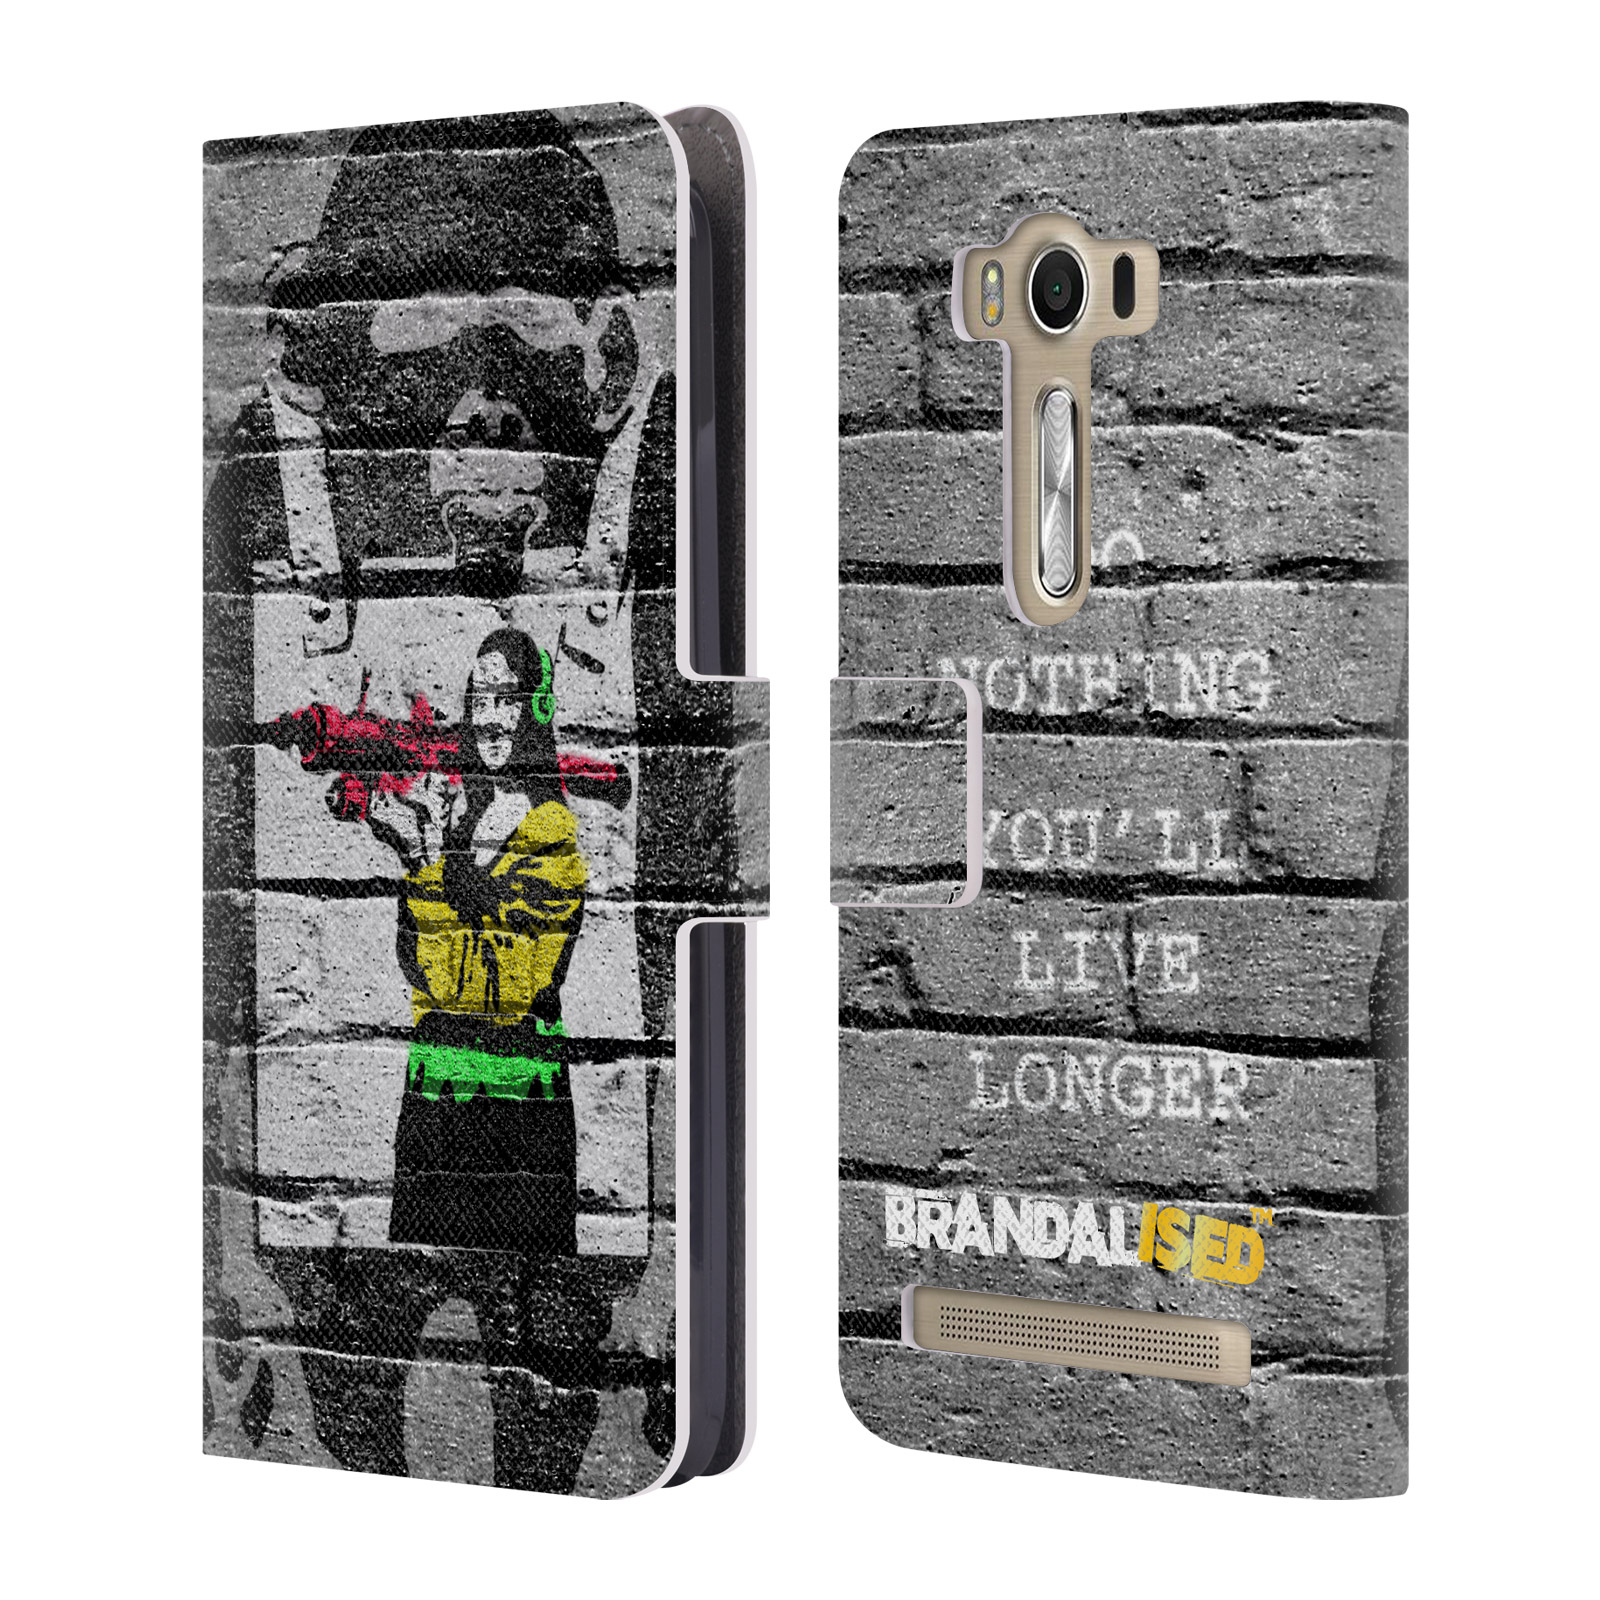 OFFICIAL BRANDALISED BANKSY COLOURED ART LEATHER BOOK WALLET CASE COVER FOR ASUS ZENFONE PHONES